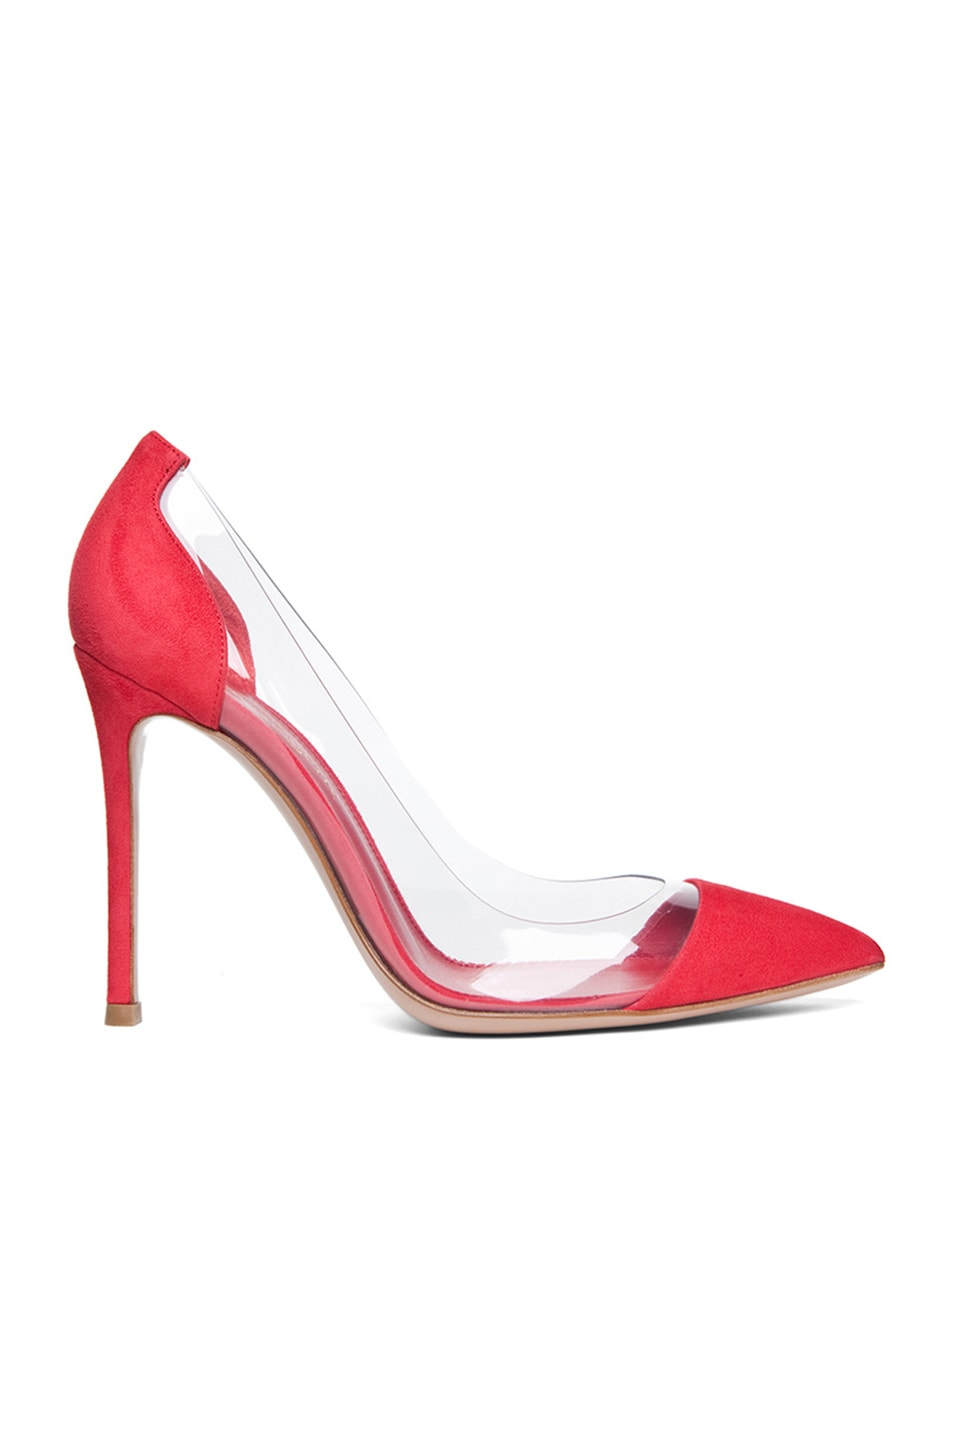 Image 1 of Gianvito Rossi Suede Plexi Pumps in Red